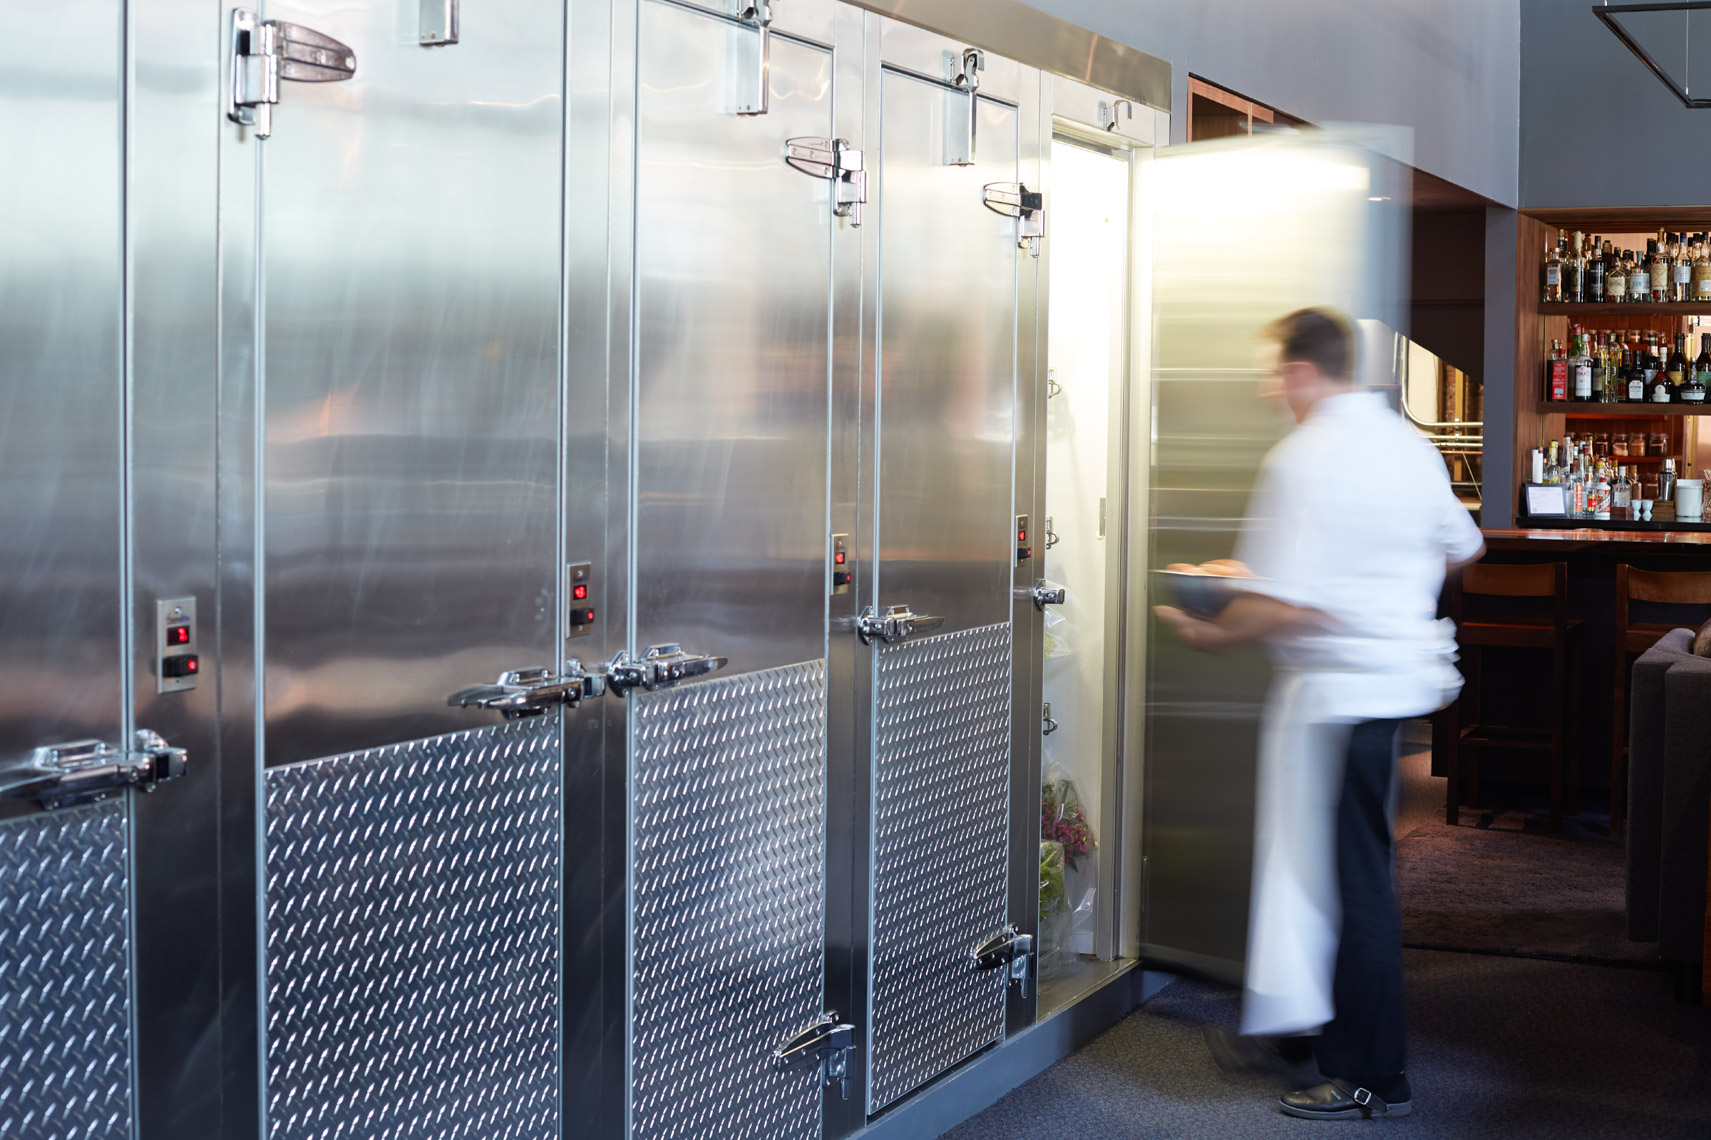 Chef in white apron opening stainless refrigerator door San Francisco lifestyle photographer